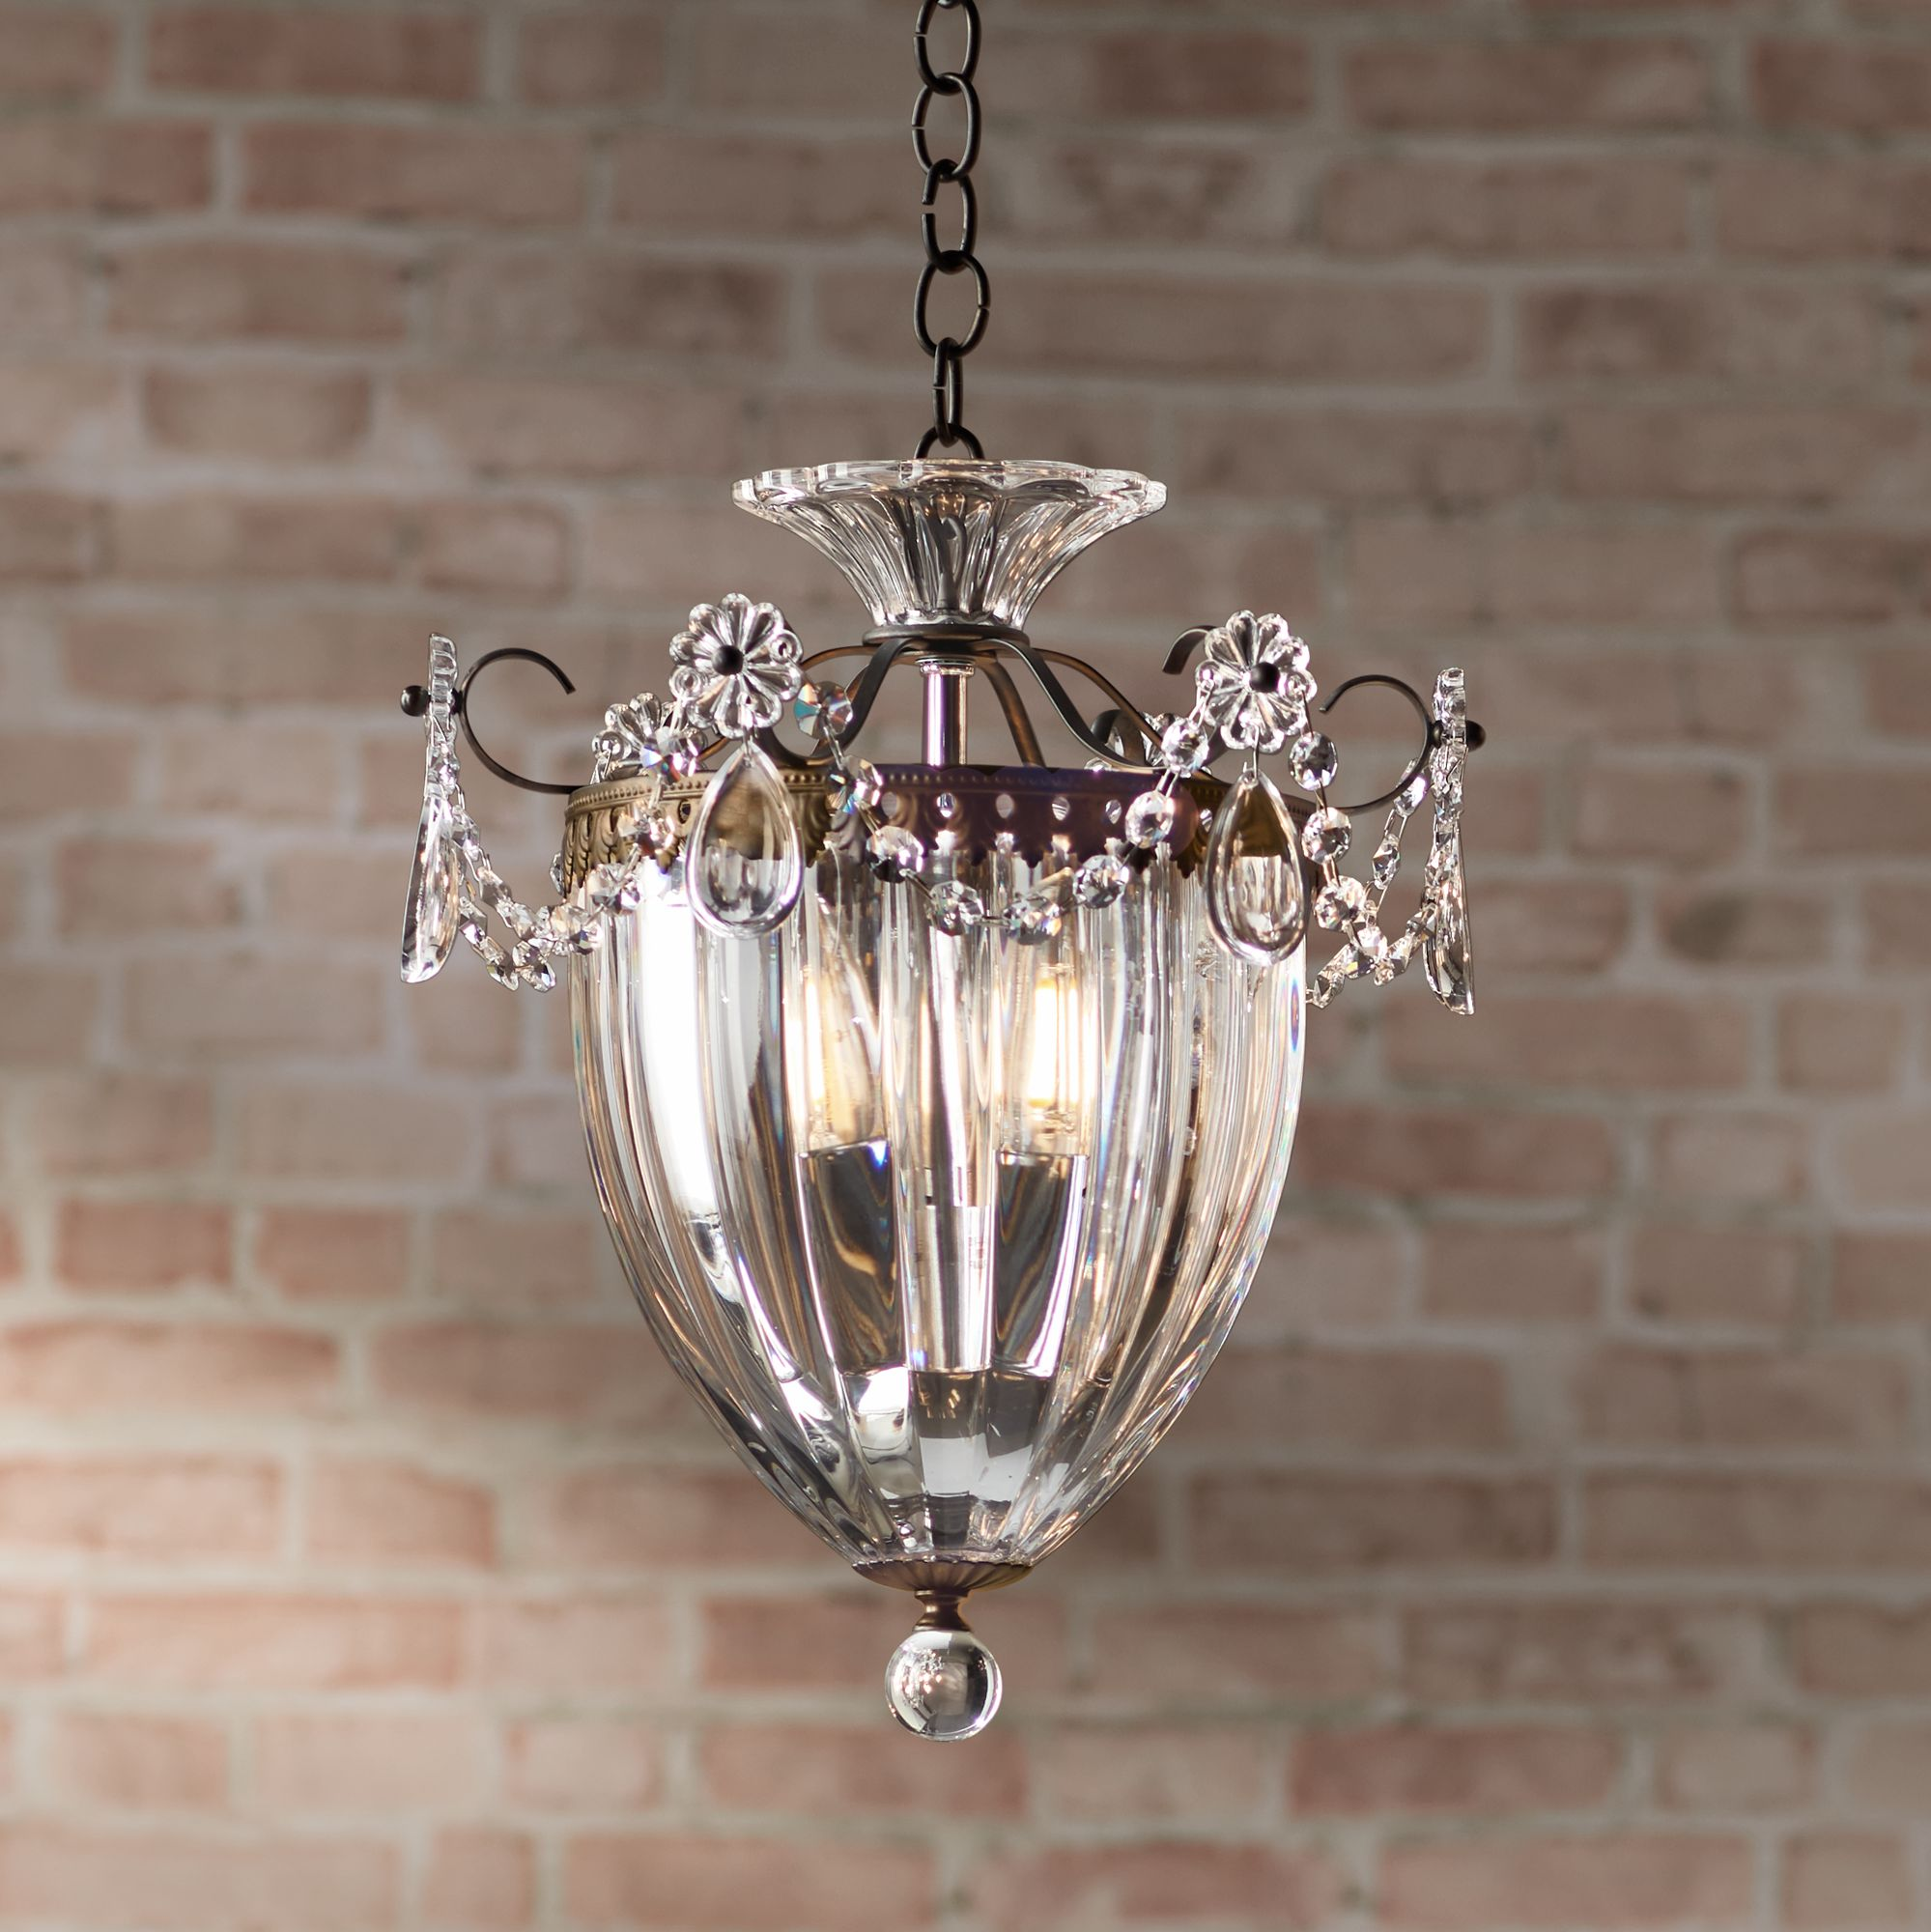 Mini Crystal Chandelier For Bathroom Custom Set Furniture Best Ideas Of Chandelier For Bathroom